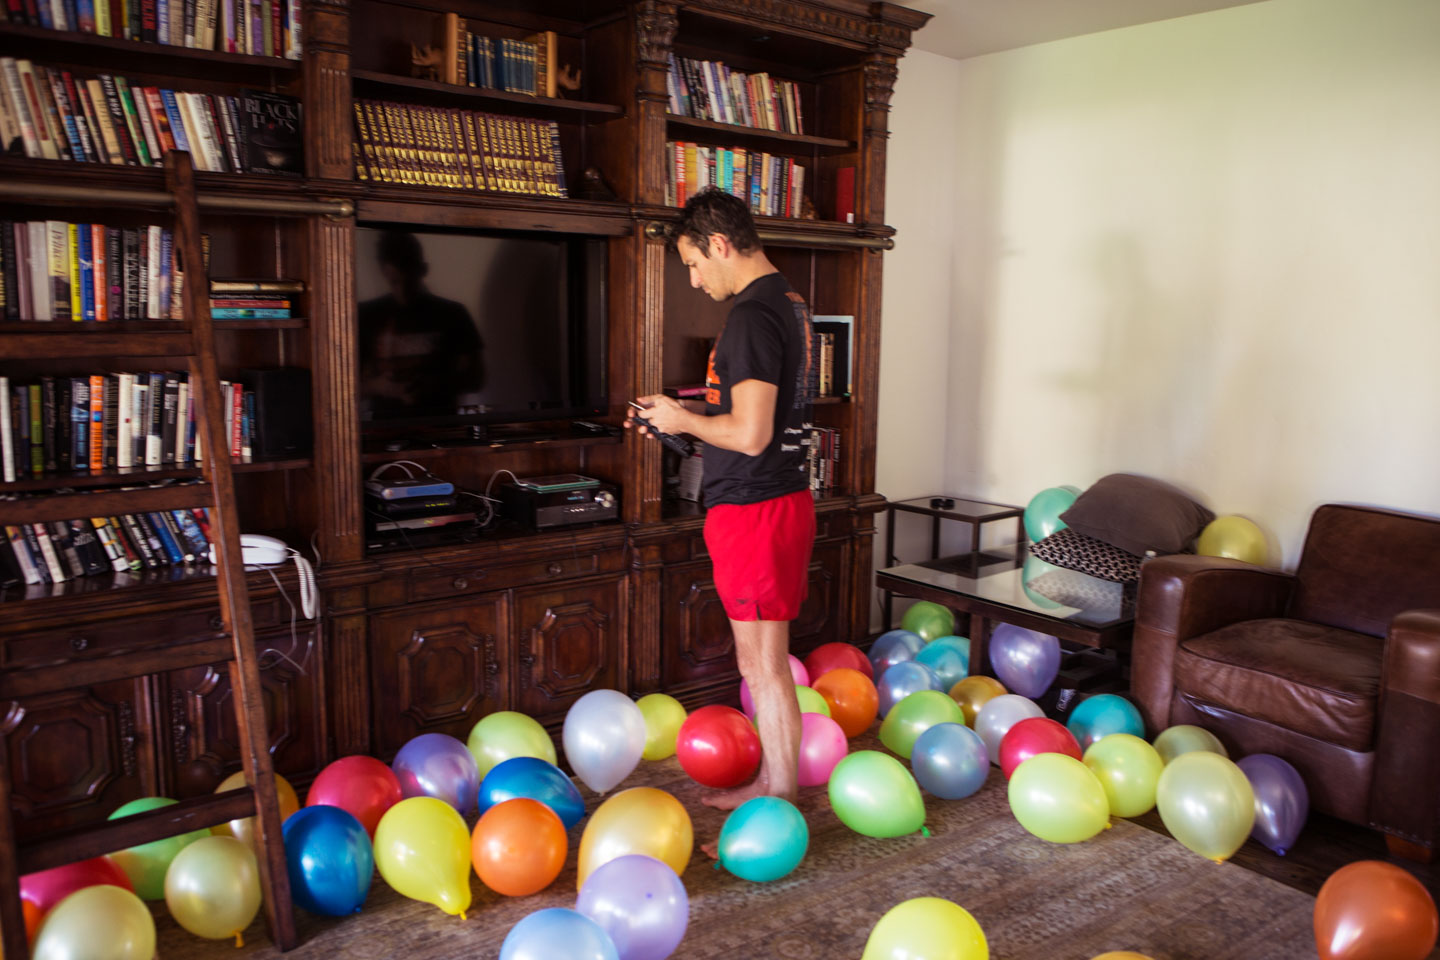 Lost in Balloons